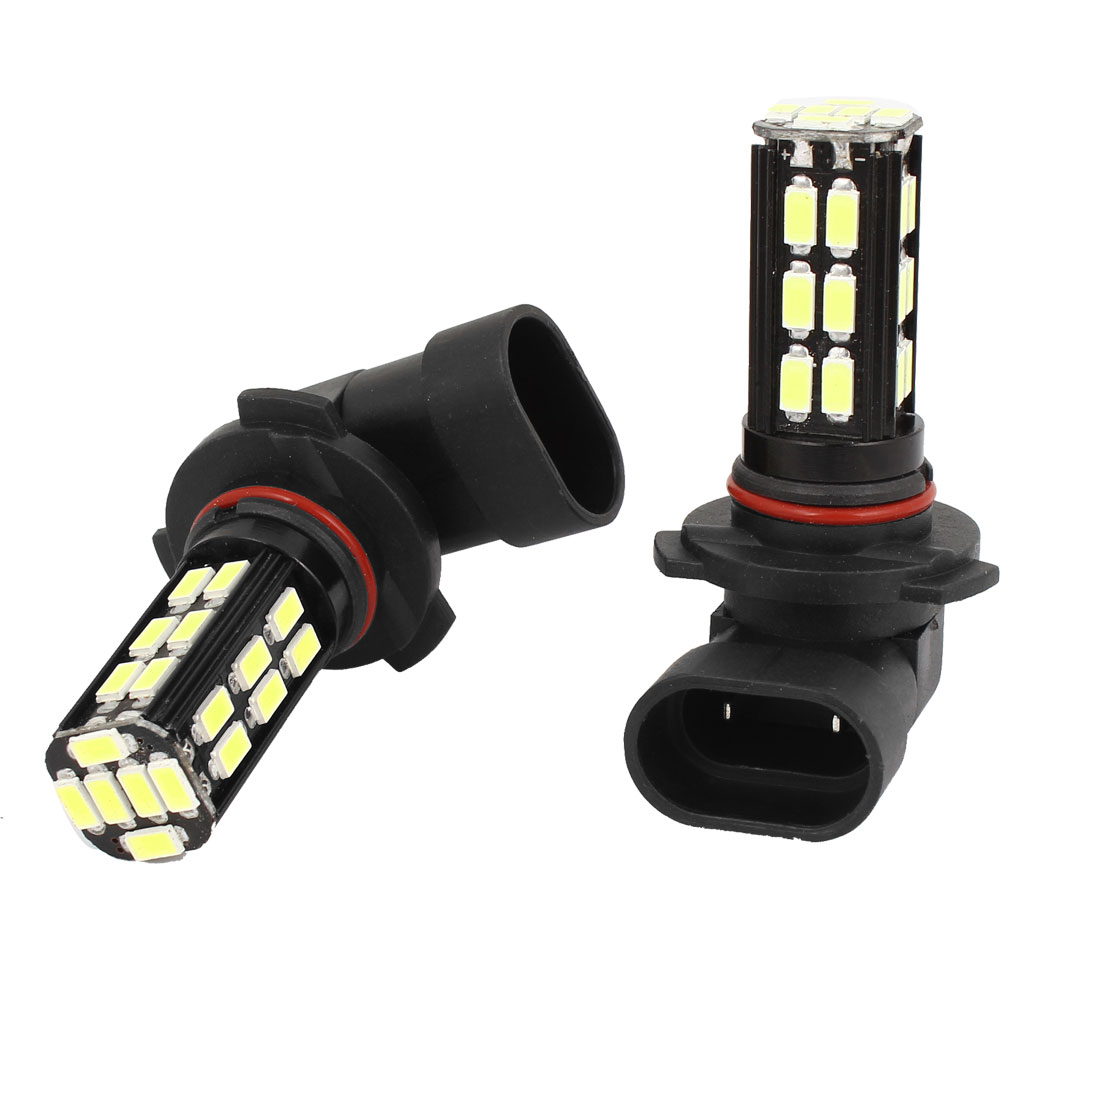 2 Pcs 9005 5730 SMD 30 LED Car Daytime Running Lamp Fog Light Driving Bulb White